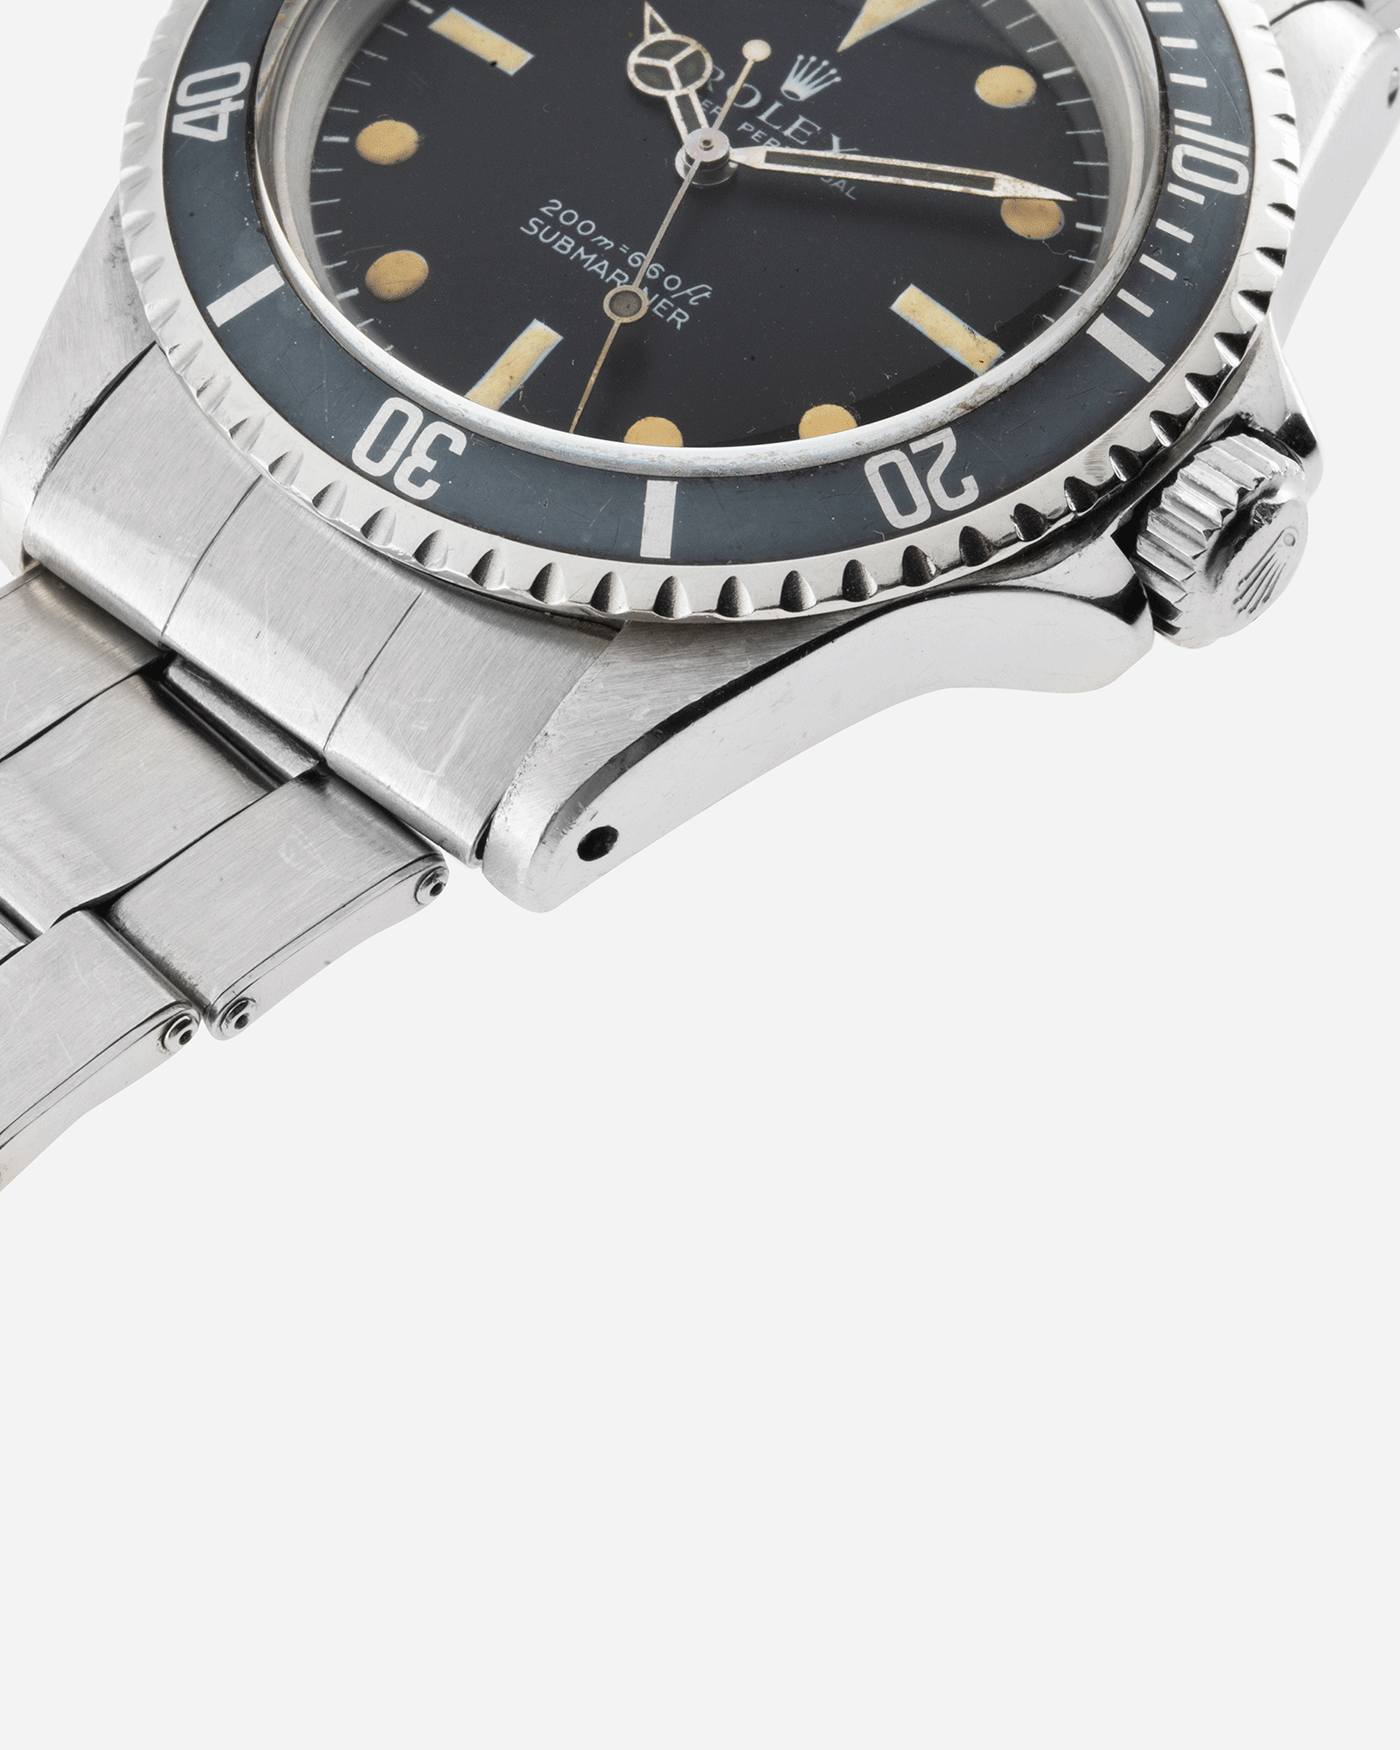 Rolex Submariner 5513 Meters First Vintage Sport Watch | S.Song Vintage Watches For Sale